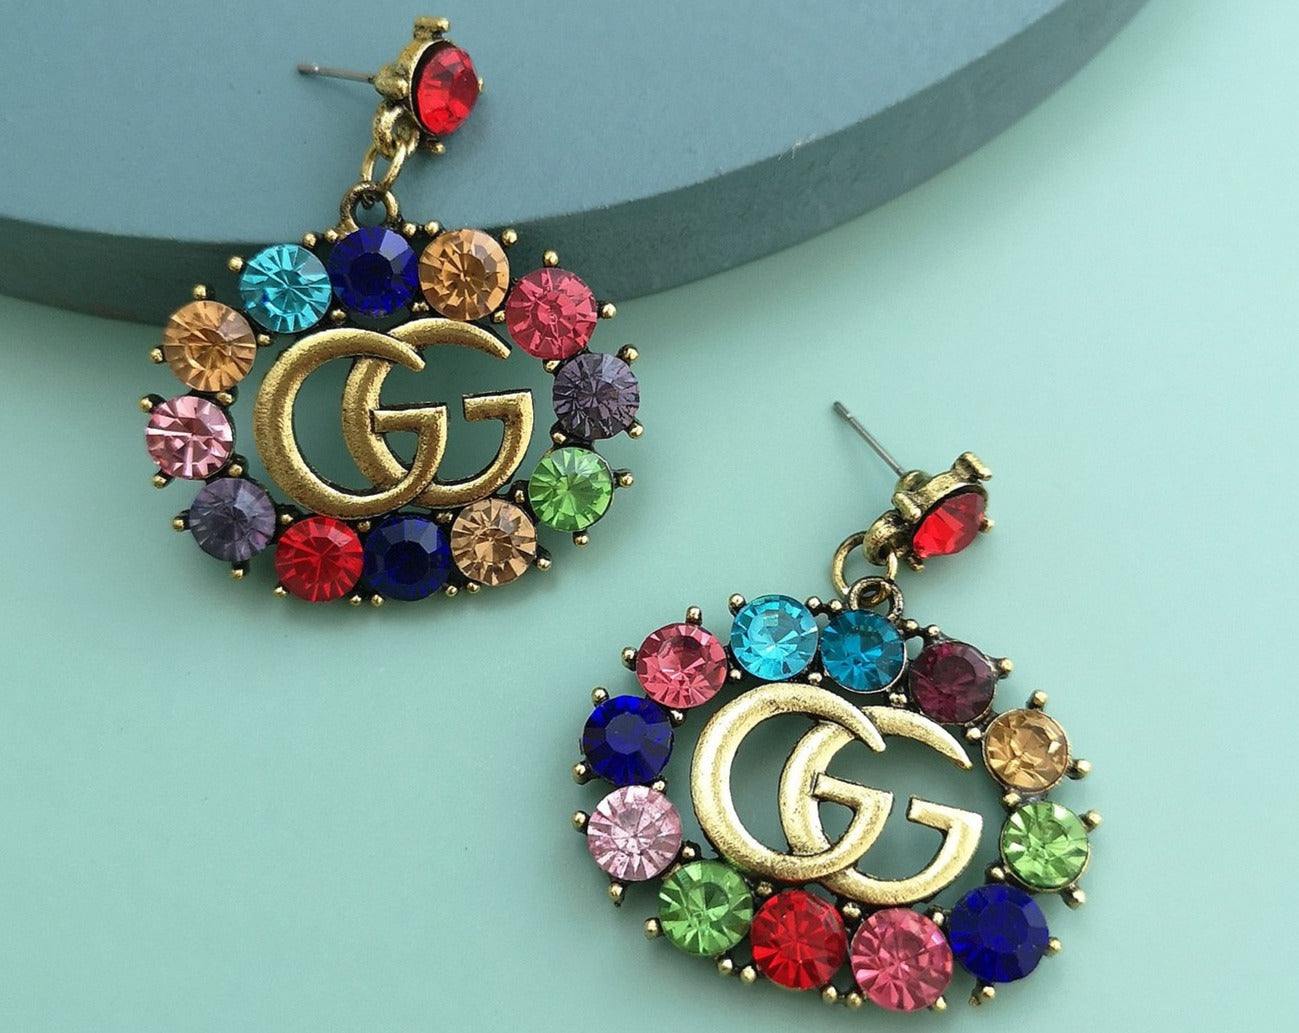 GG Rhinestone Dangle Earrings Rainbow